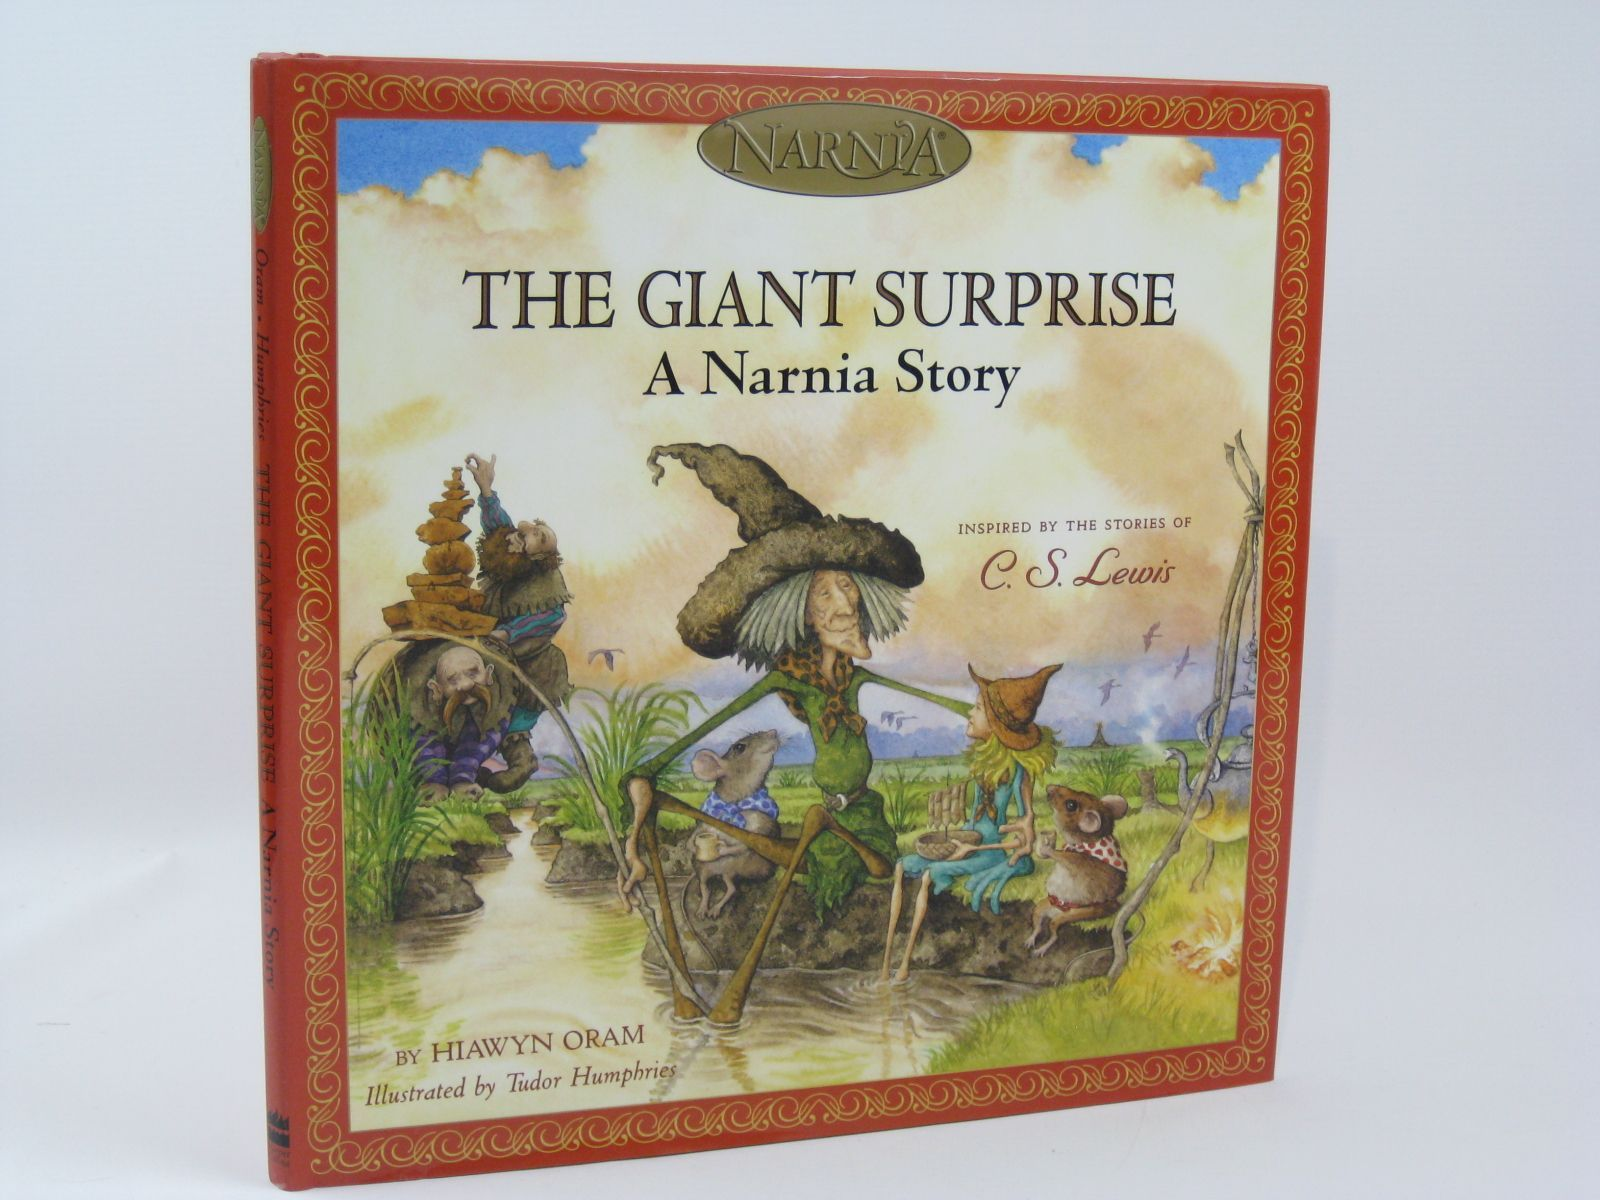 Photo of THE GIANT SURPRISE - A NARNIA STORY written by Oram, Hiawyn illustrated by Humphries, Tudor published by Harper Collins Childrens Books (STOCK CODE: 1406226)  for sale by Stella & Rose's Books